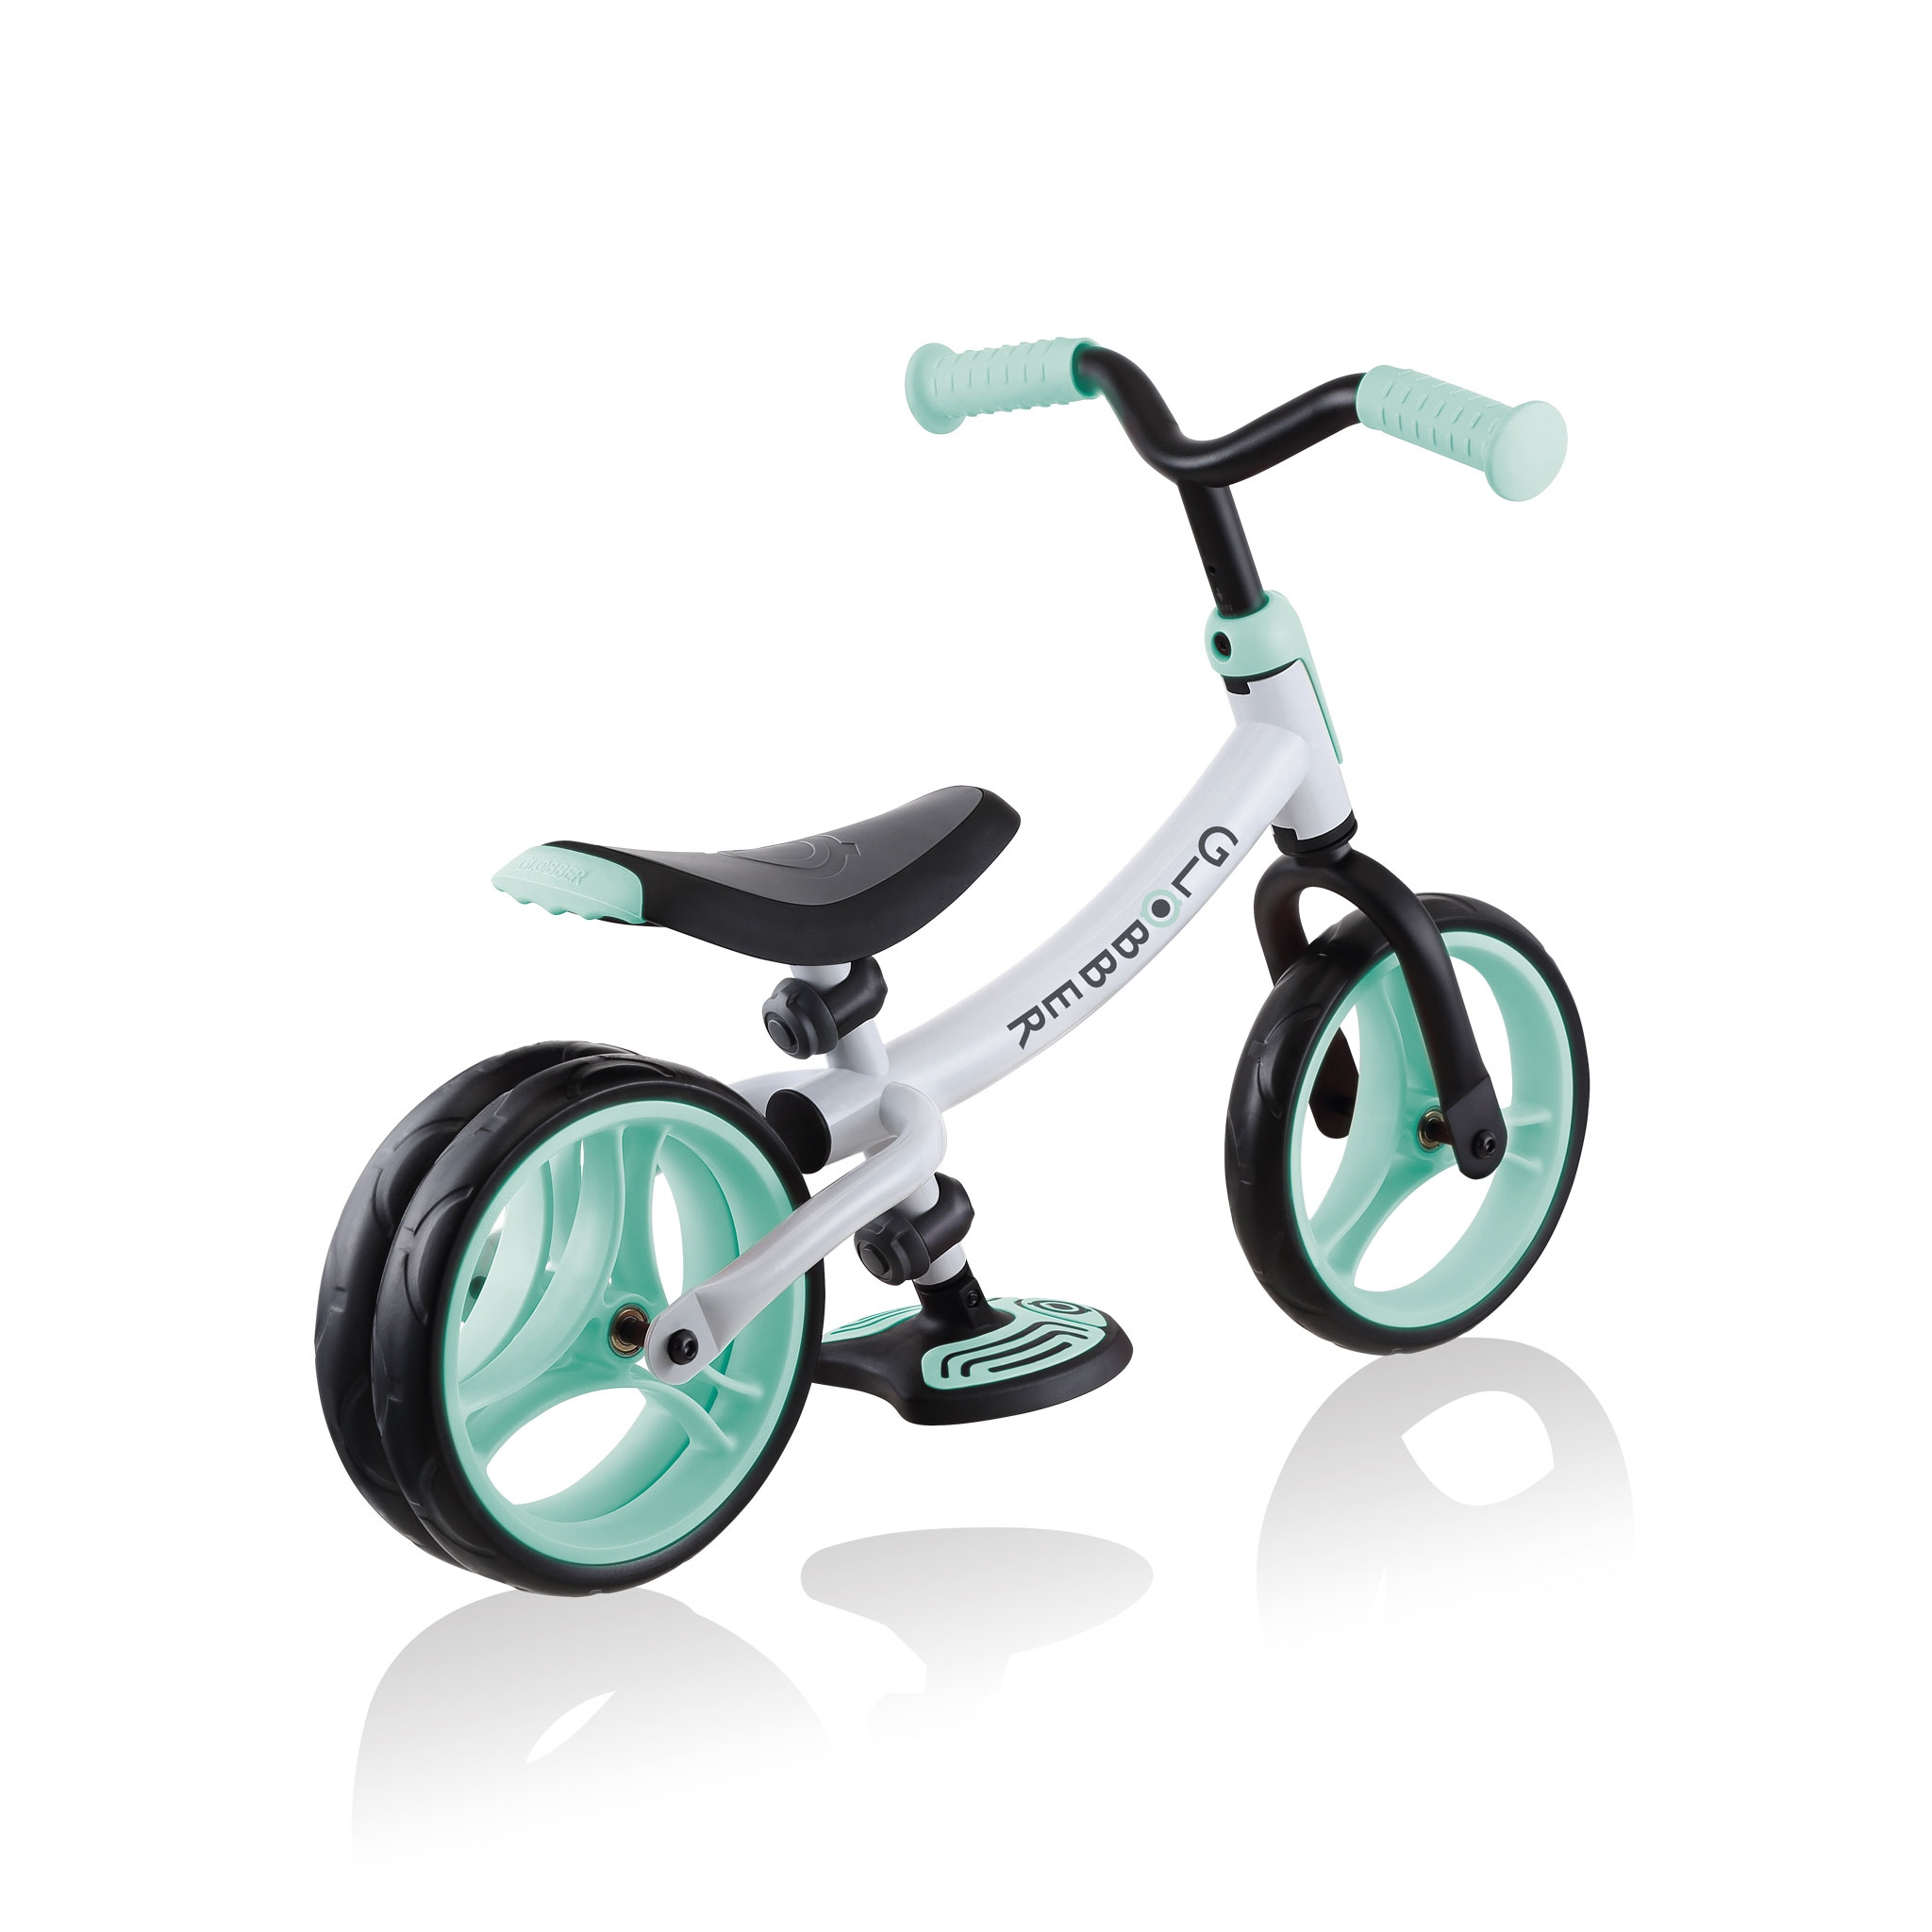 GO-BIKE-DUO-dual-rear-wheel-toddler-balance-bike-aids-balance-and-develops-motor-skills_mint 4